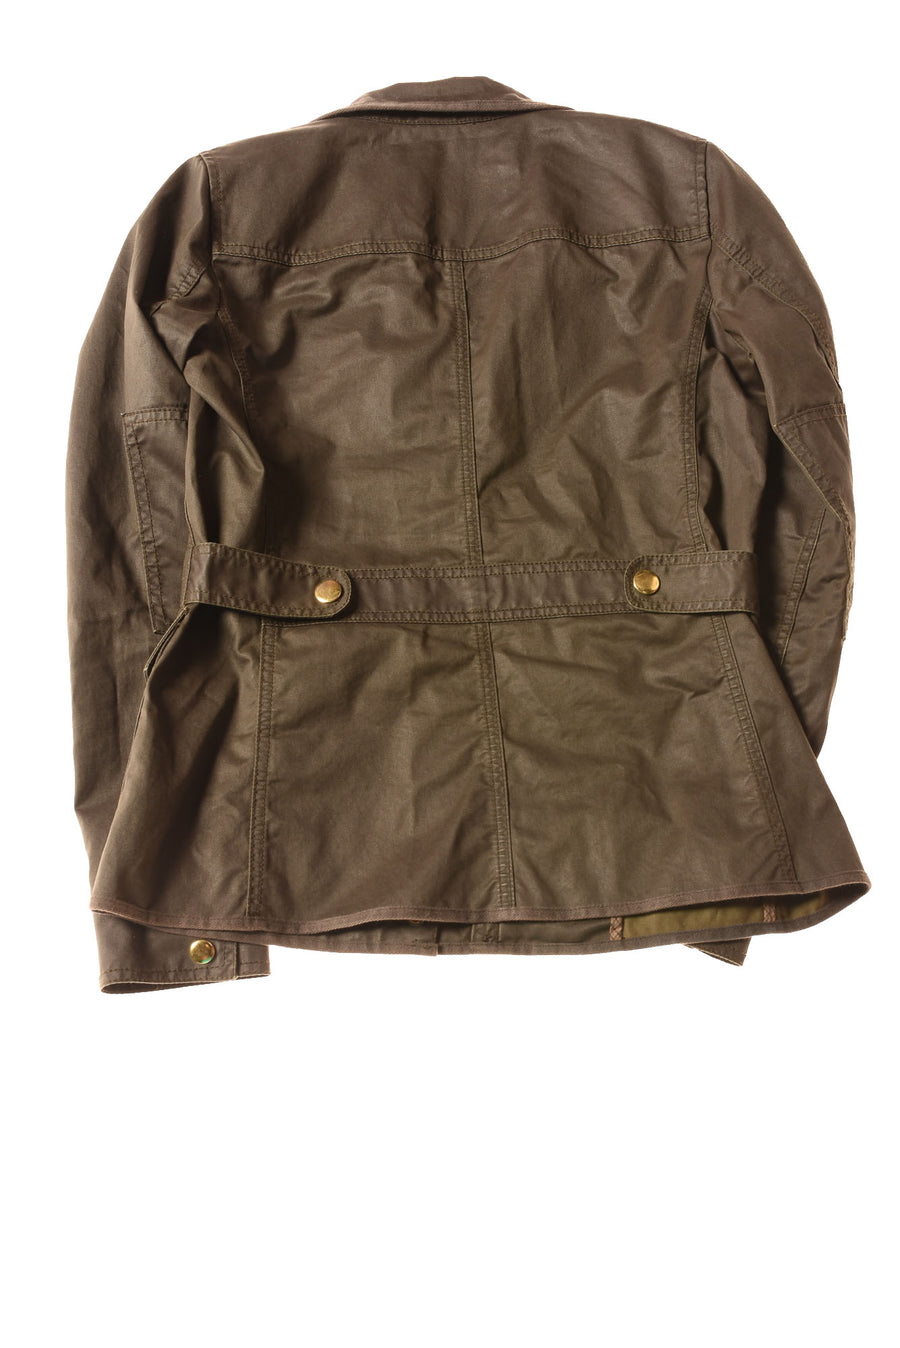 USED J.Crew Women's Coat X-Small Olive